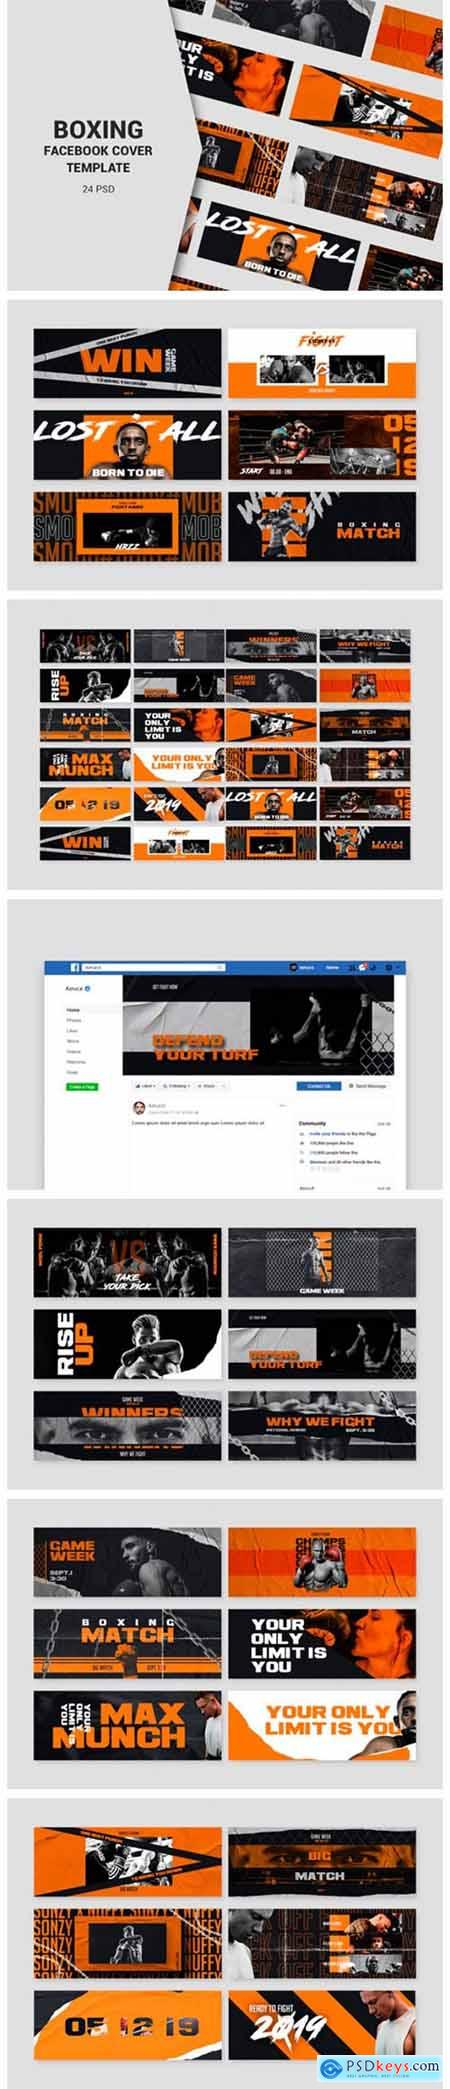 Boxing Facebook Cover Templates 2661861